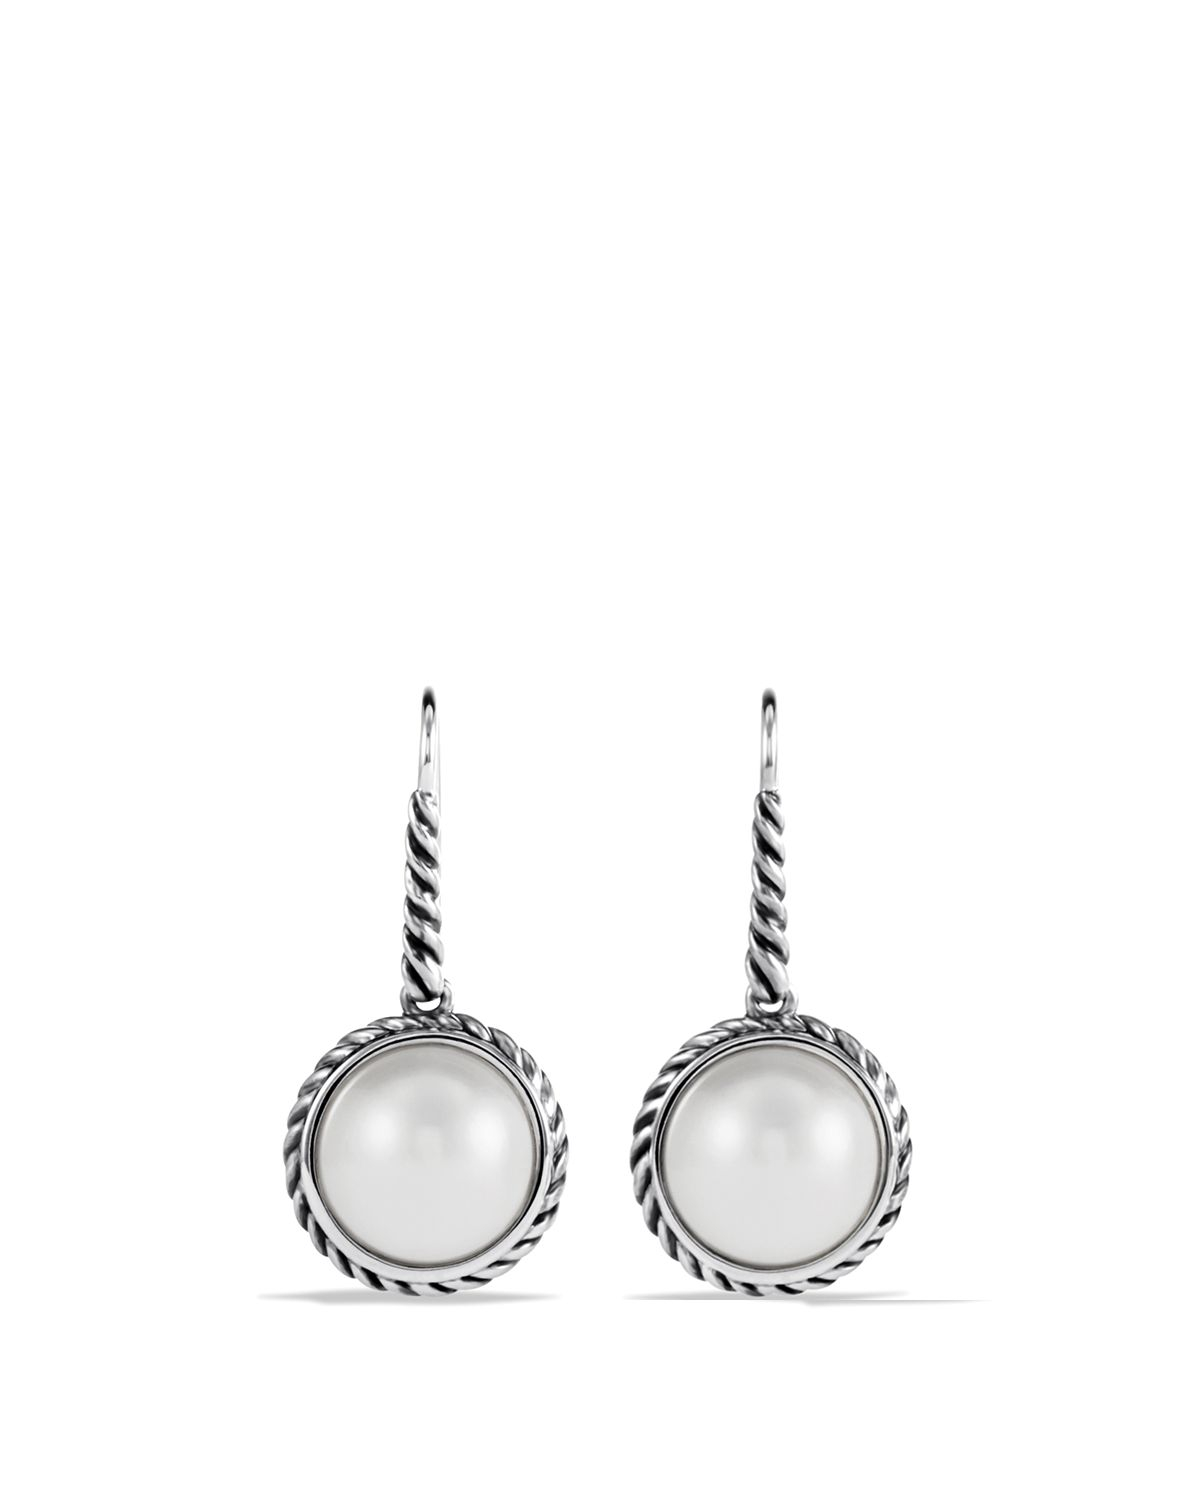 david yurman cable wrap drop earrings with pearls in white